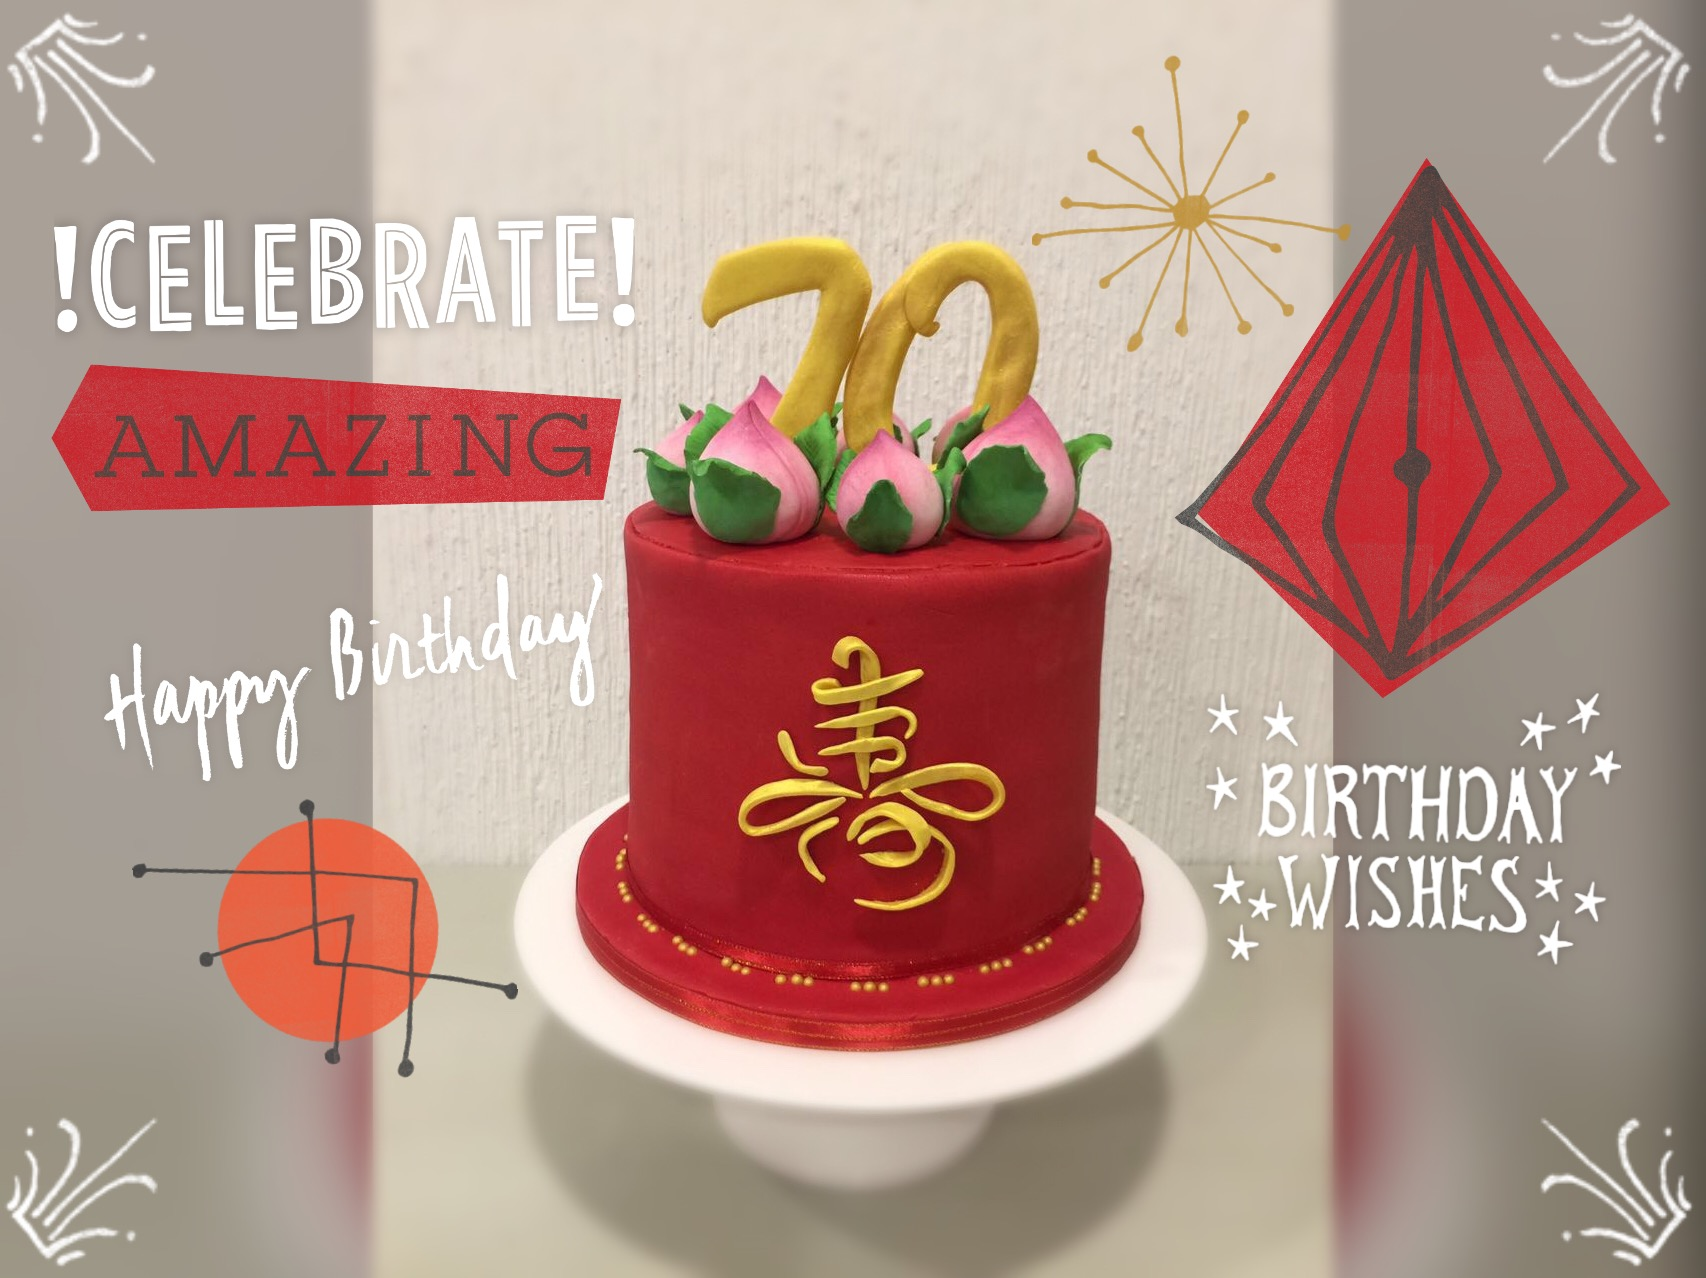 That Not Your Ordinary 70 Years Old Birthday Cake